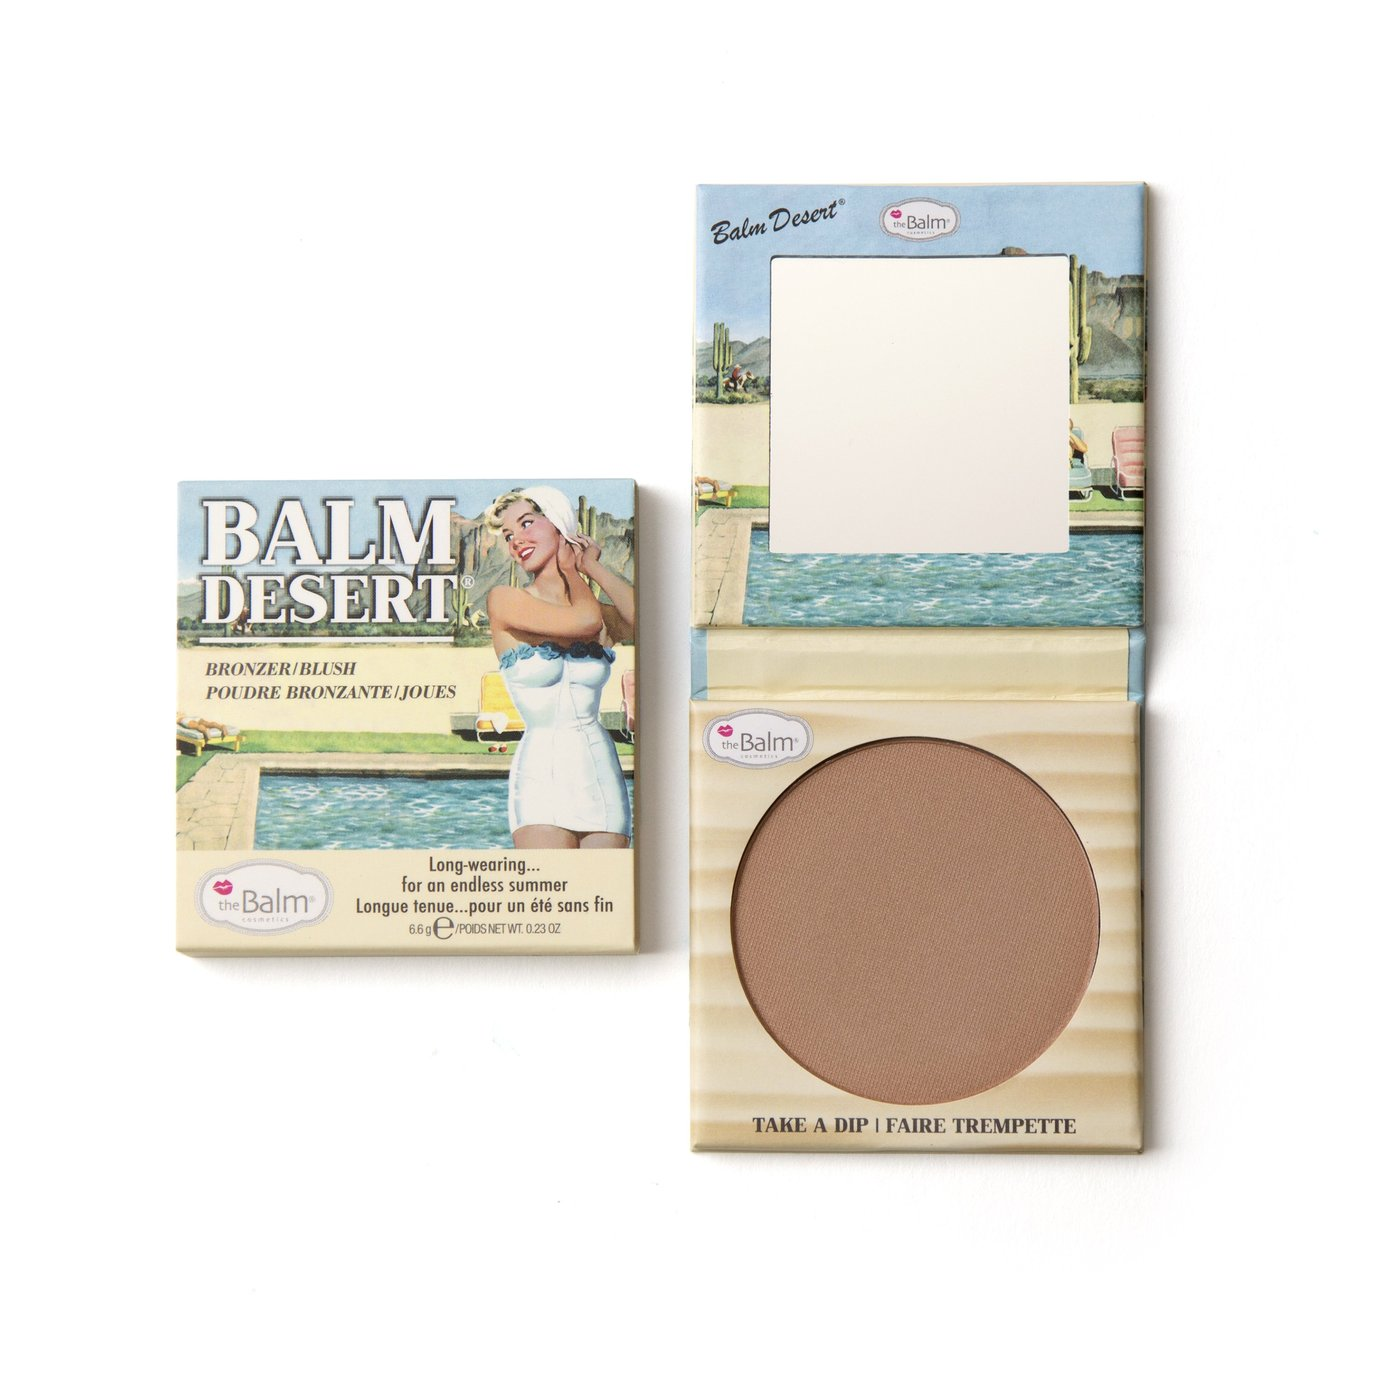 the Balm® BALM DESERT® Bronzer/Blush